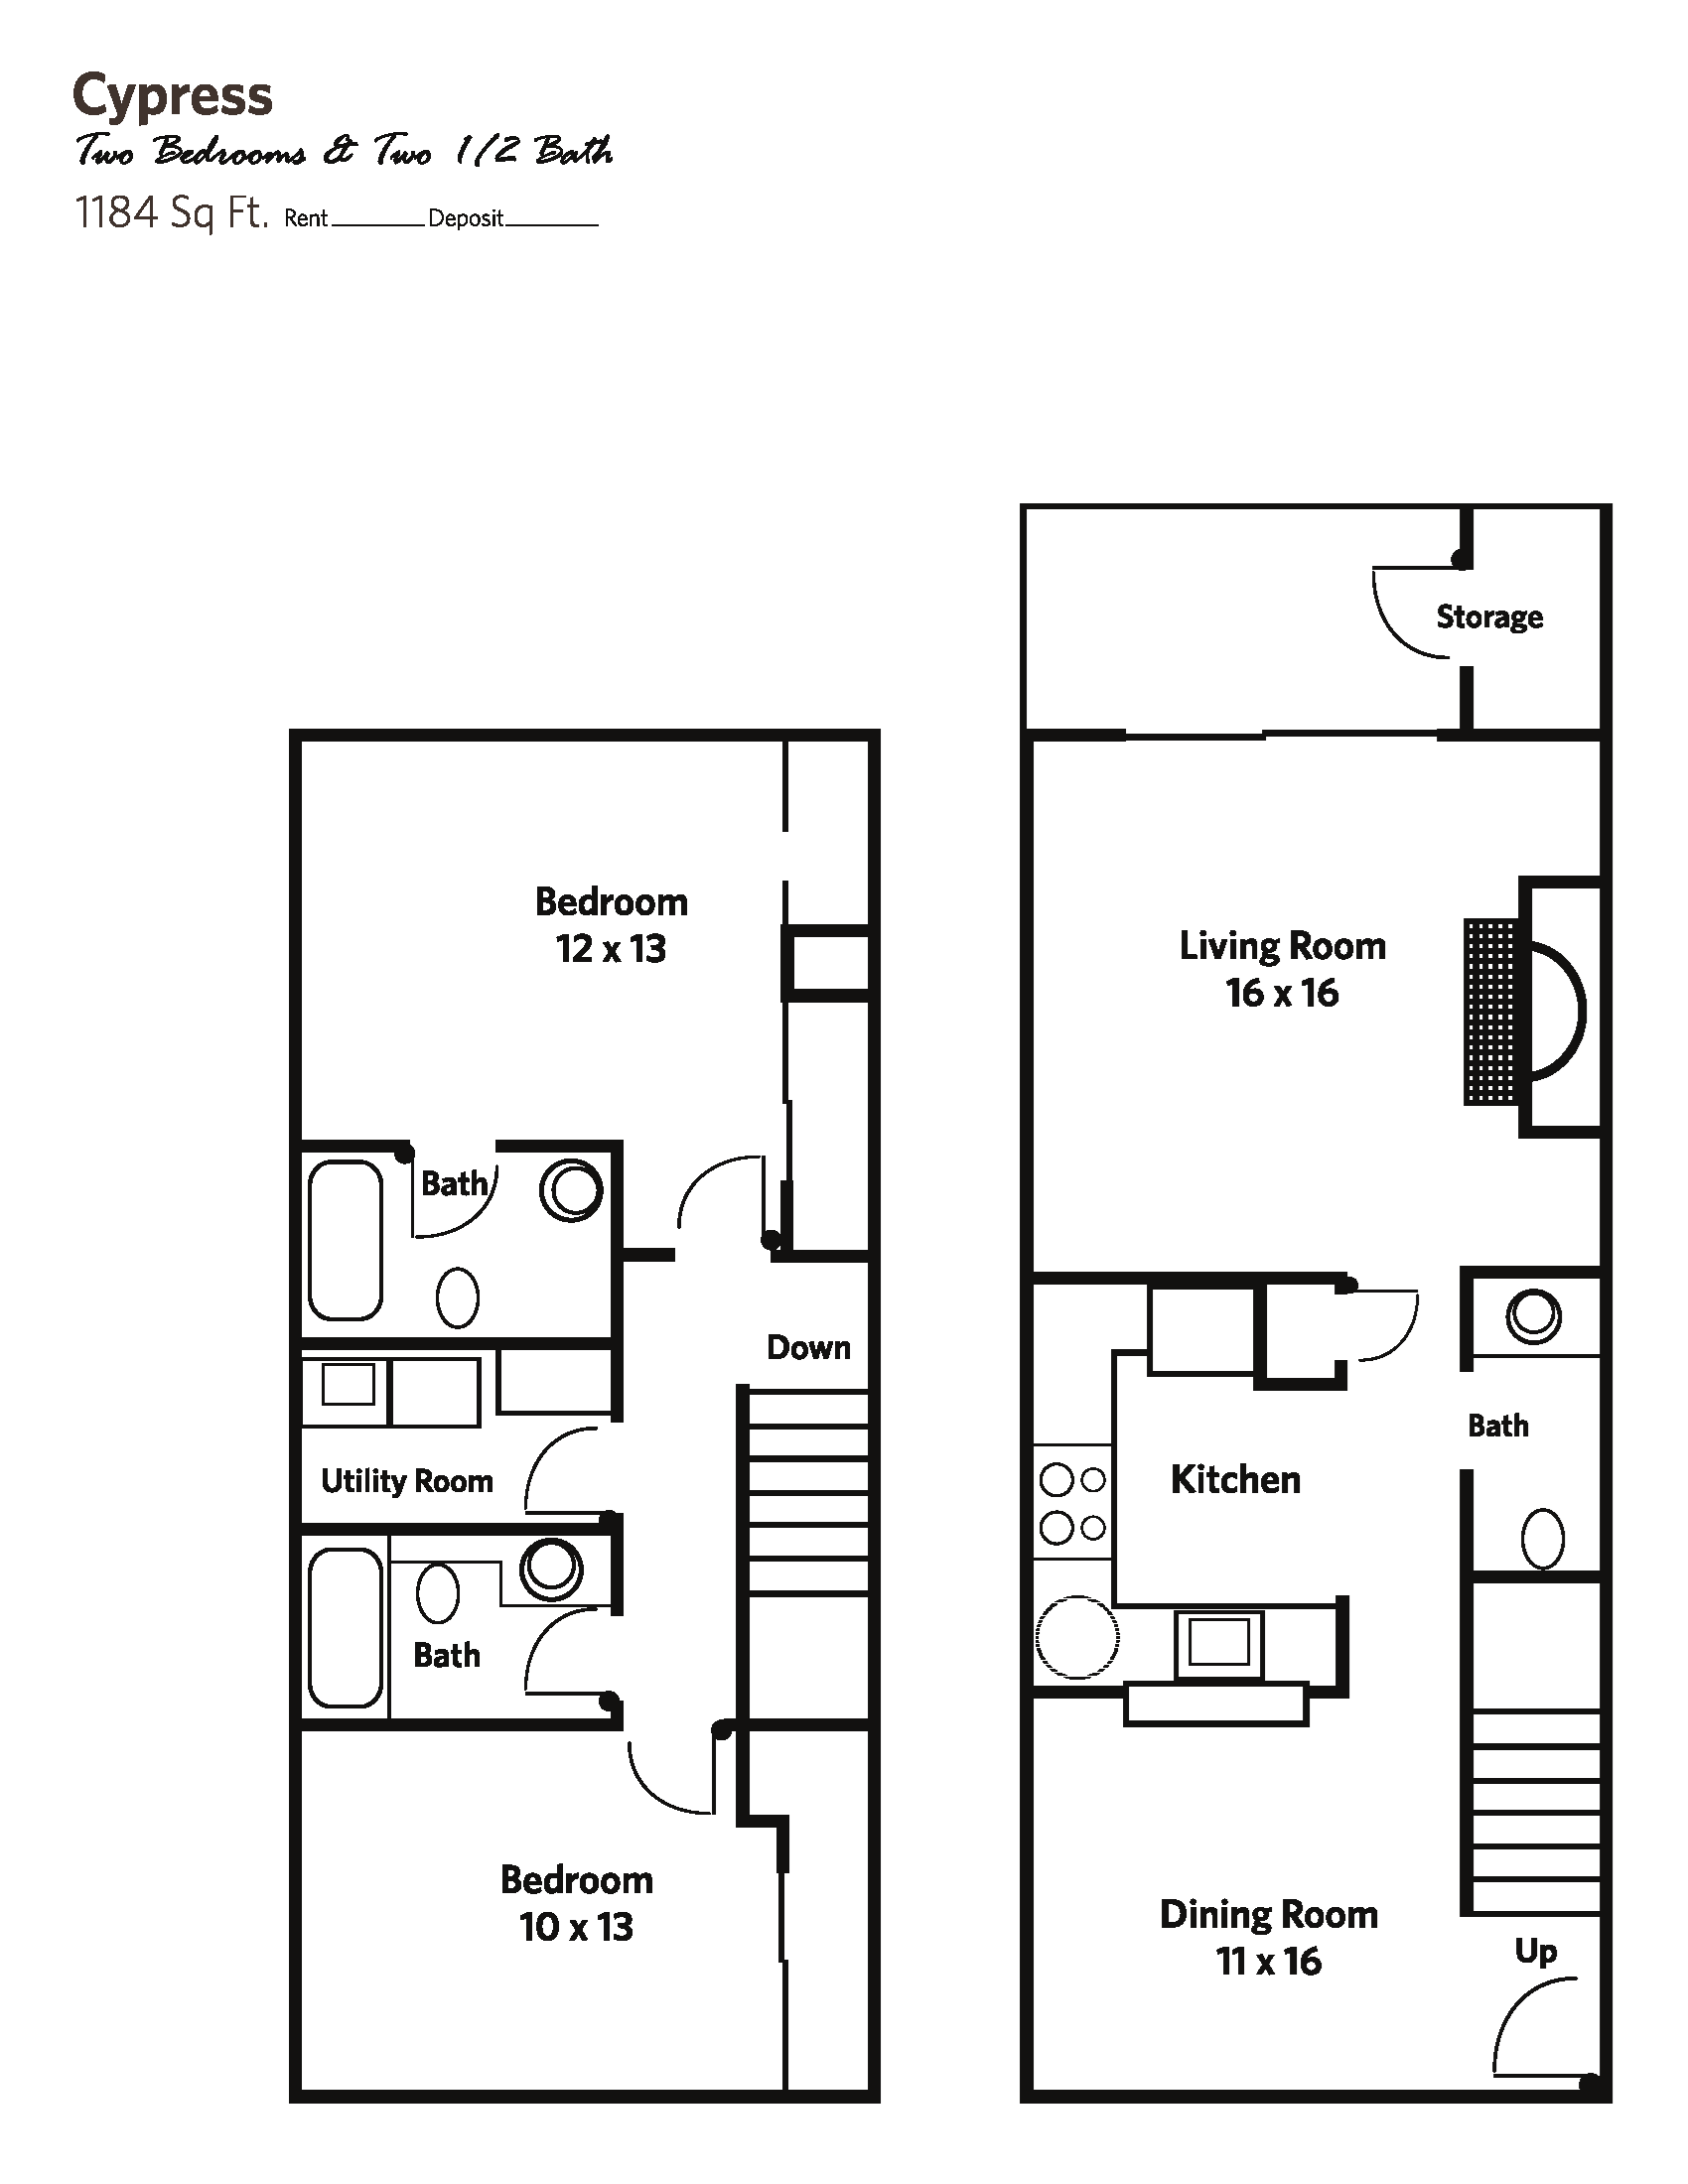 CYPRESS (2 bed + 2.5 bath) - Townhomes Floor Plan 5